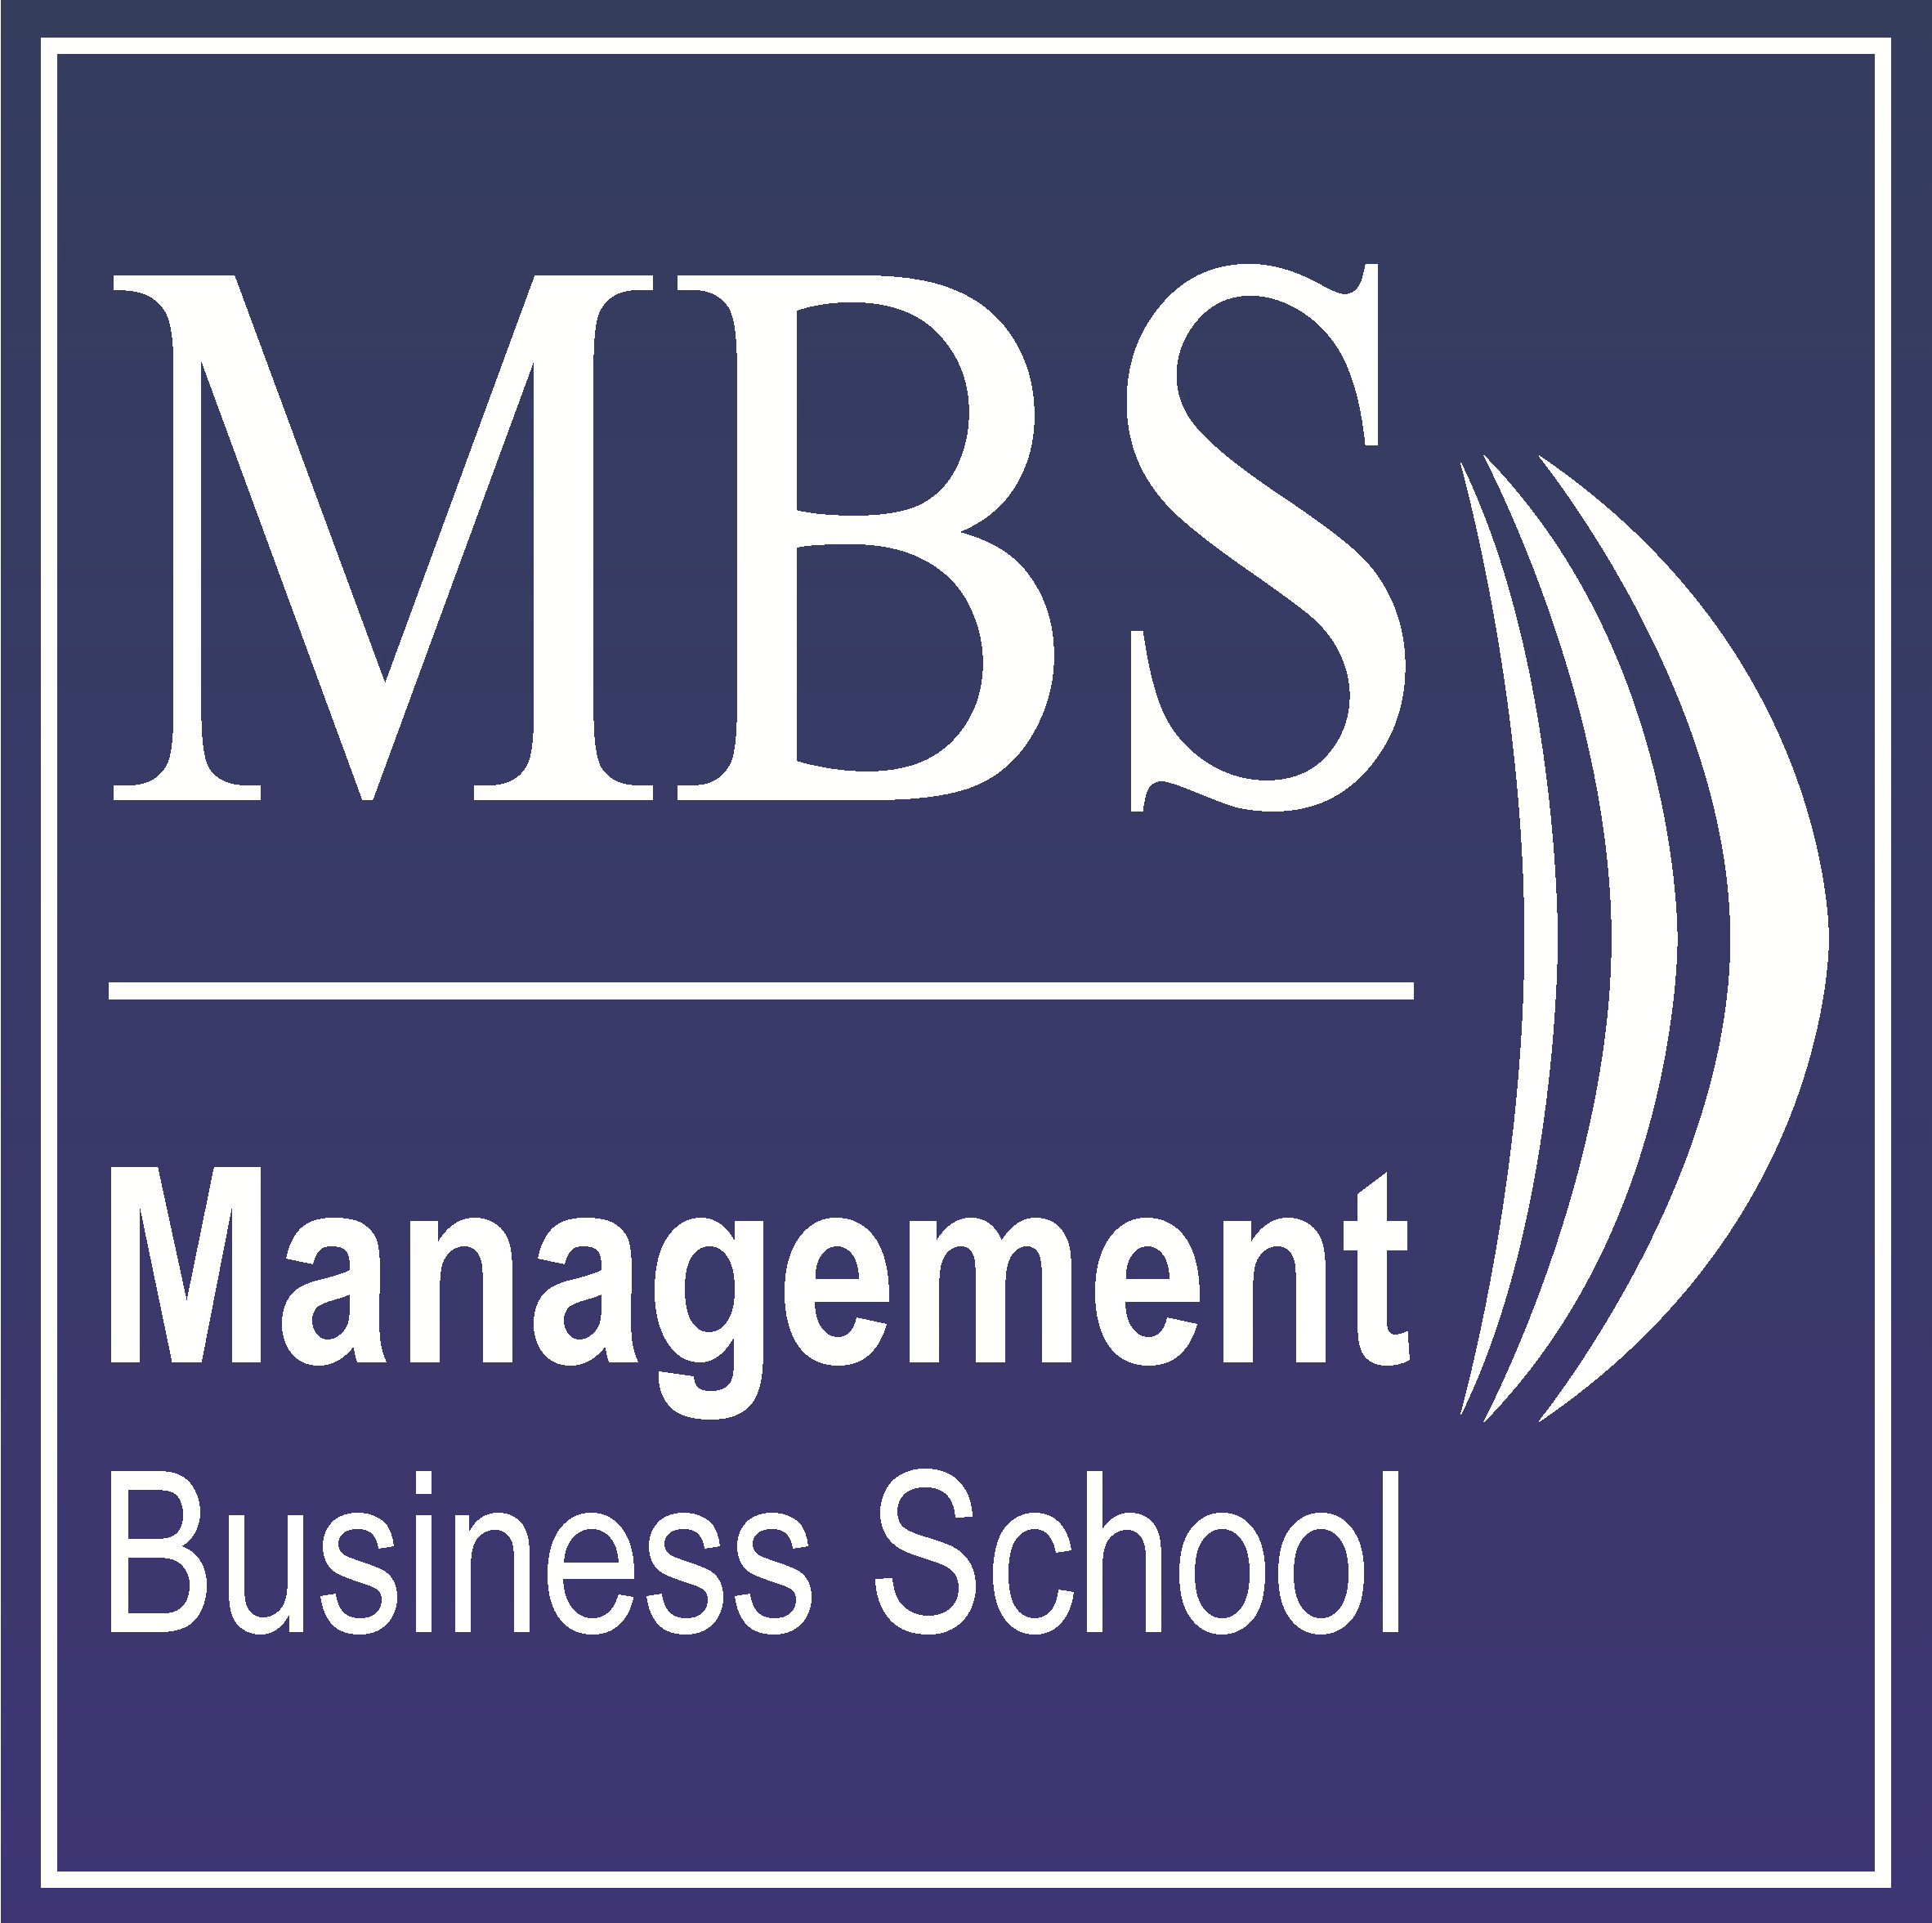 MBS Management business school